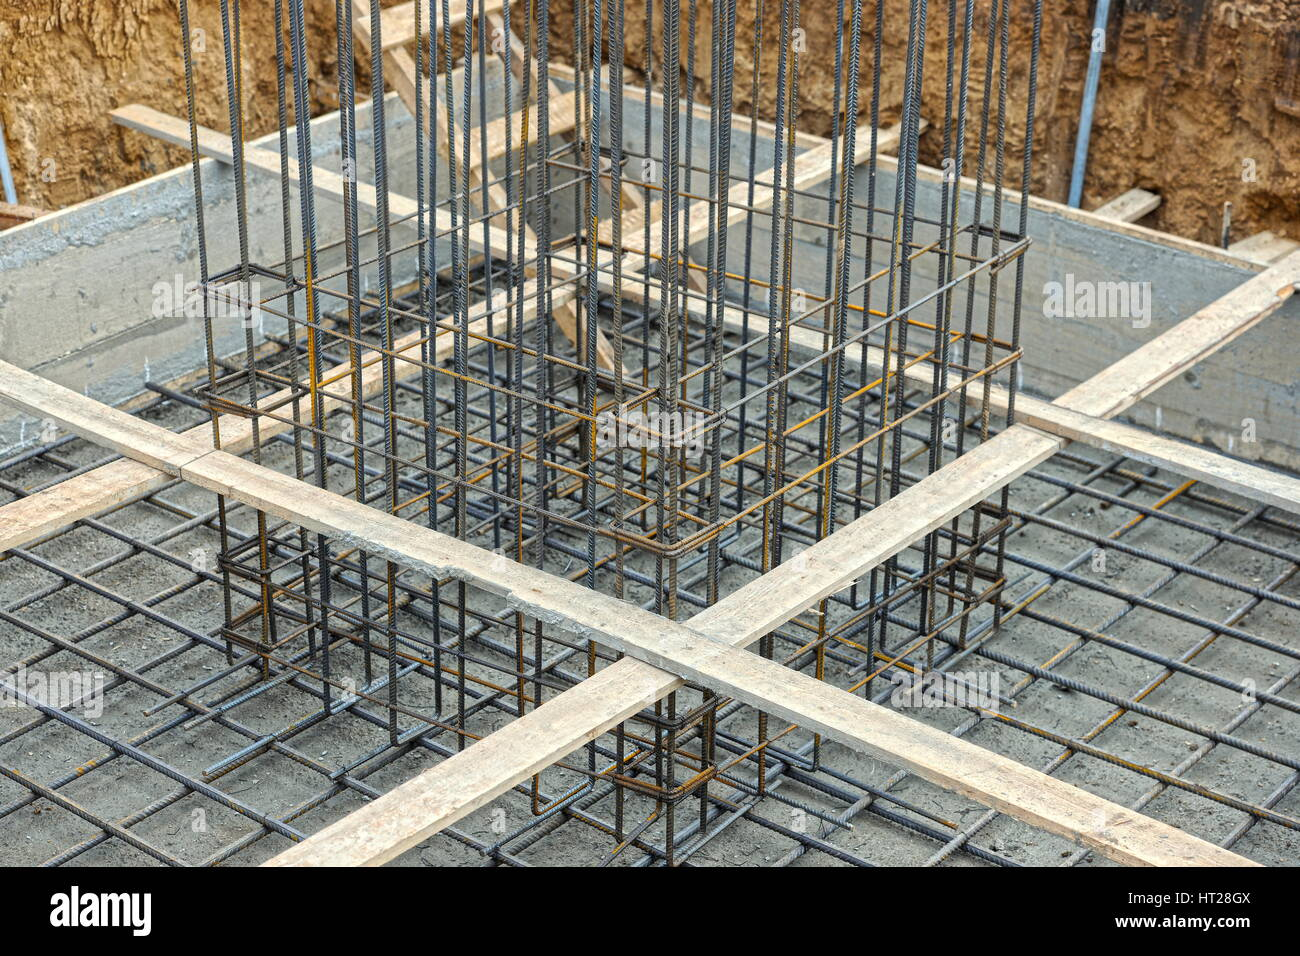 A big hole of pole in construction site building prepare for pouring cement Stock Photo